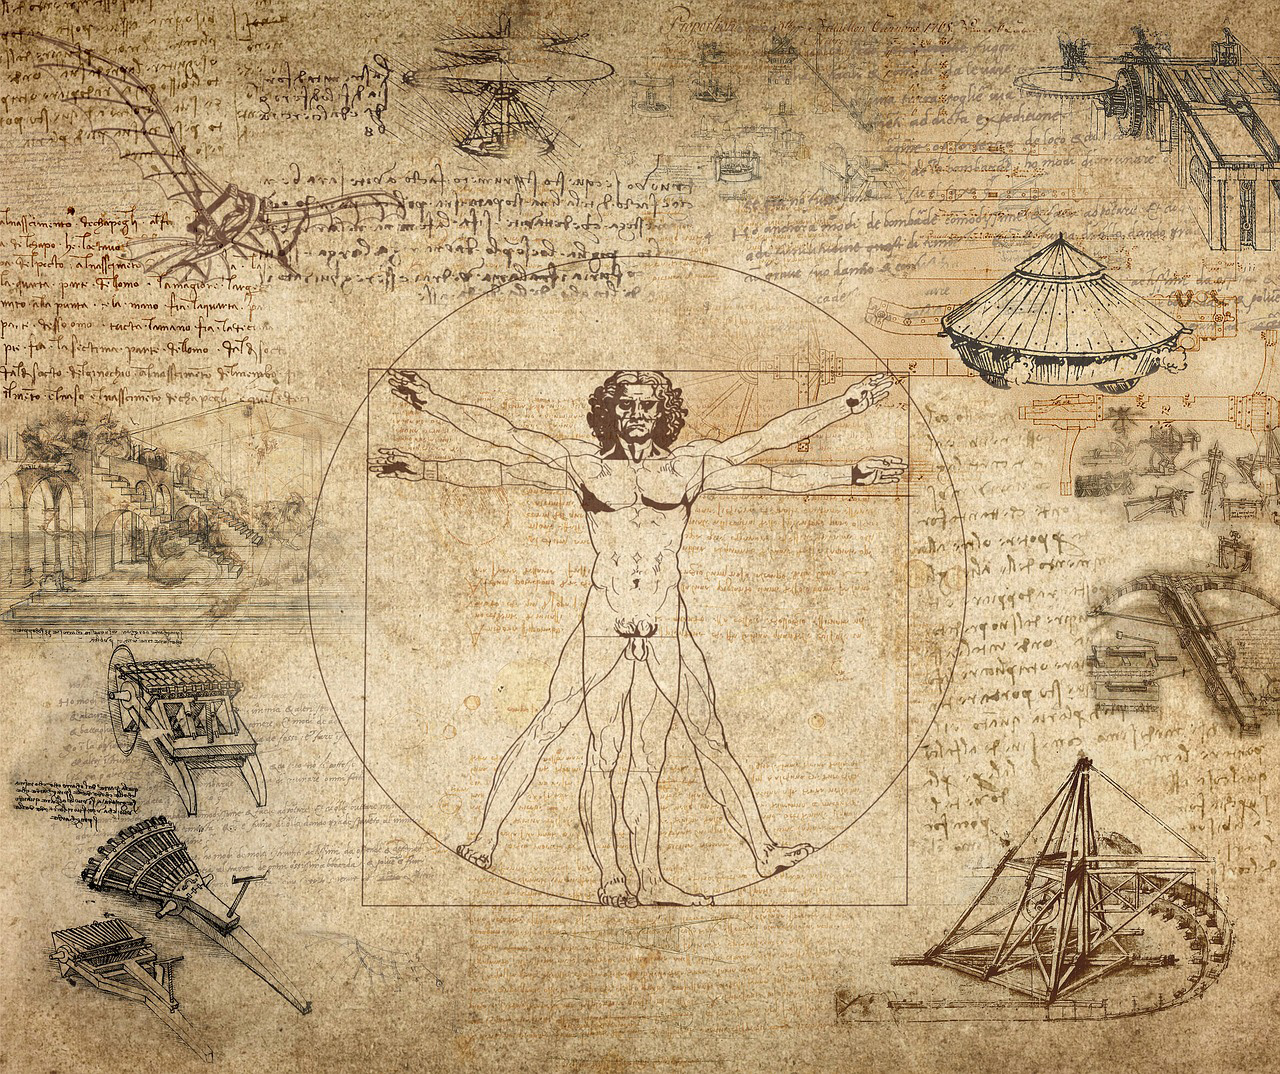 The Virtuvian Man by Leonardo da Vinci | Human within the Architect | Prem Chandavarkar | STIR